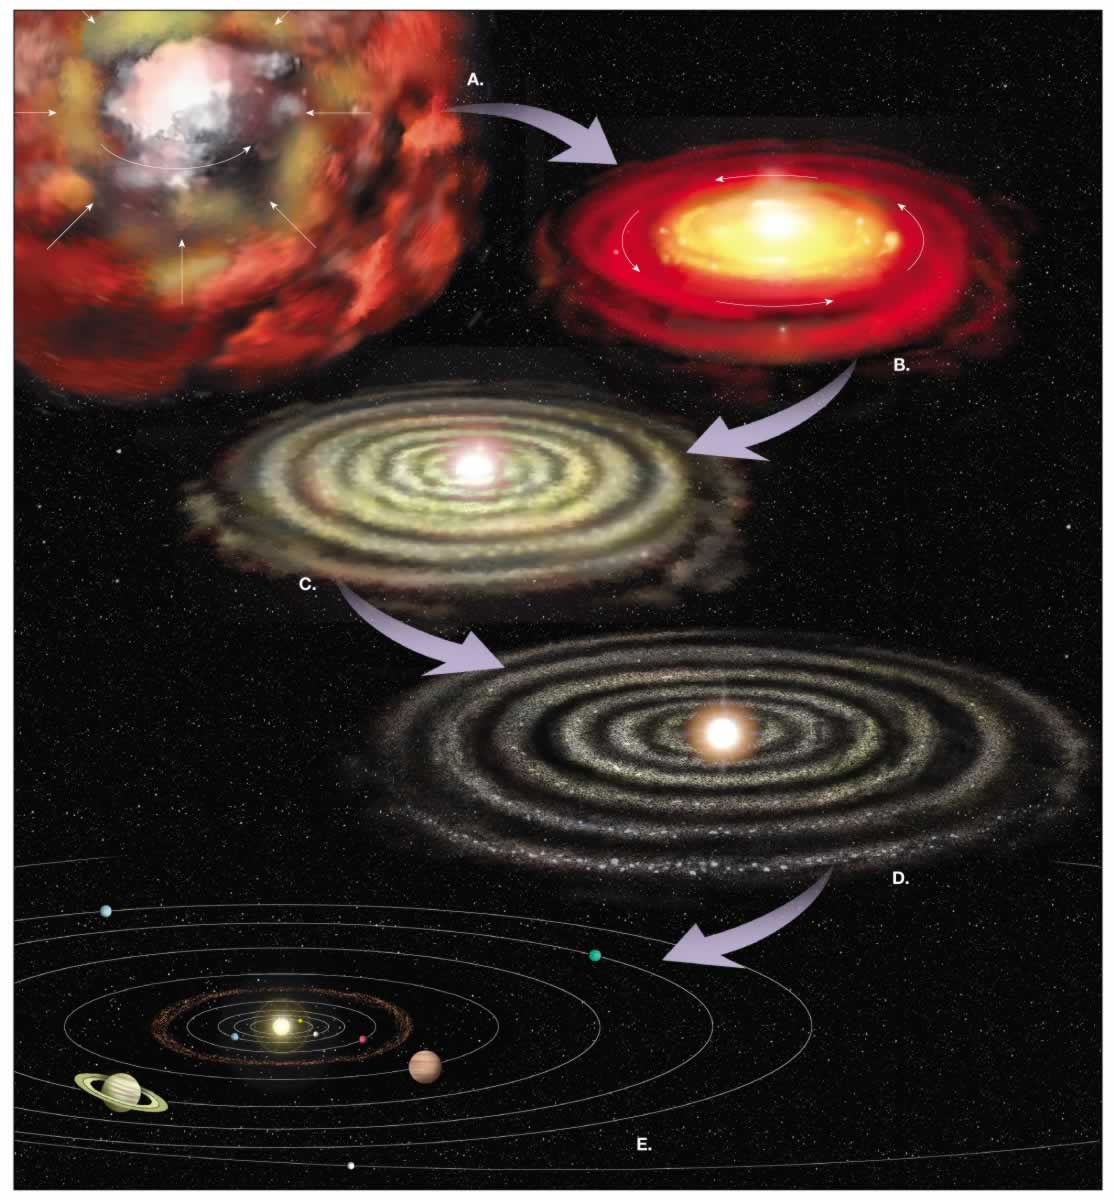 http://astronomyonline.org/Exoplanets/ExoplanetDynamics.asp image source here